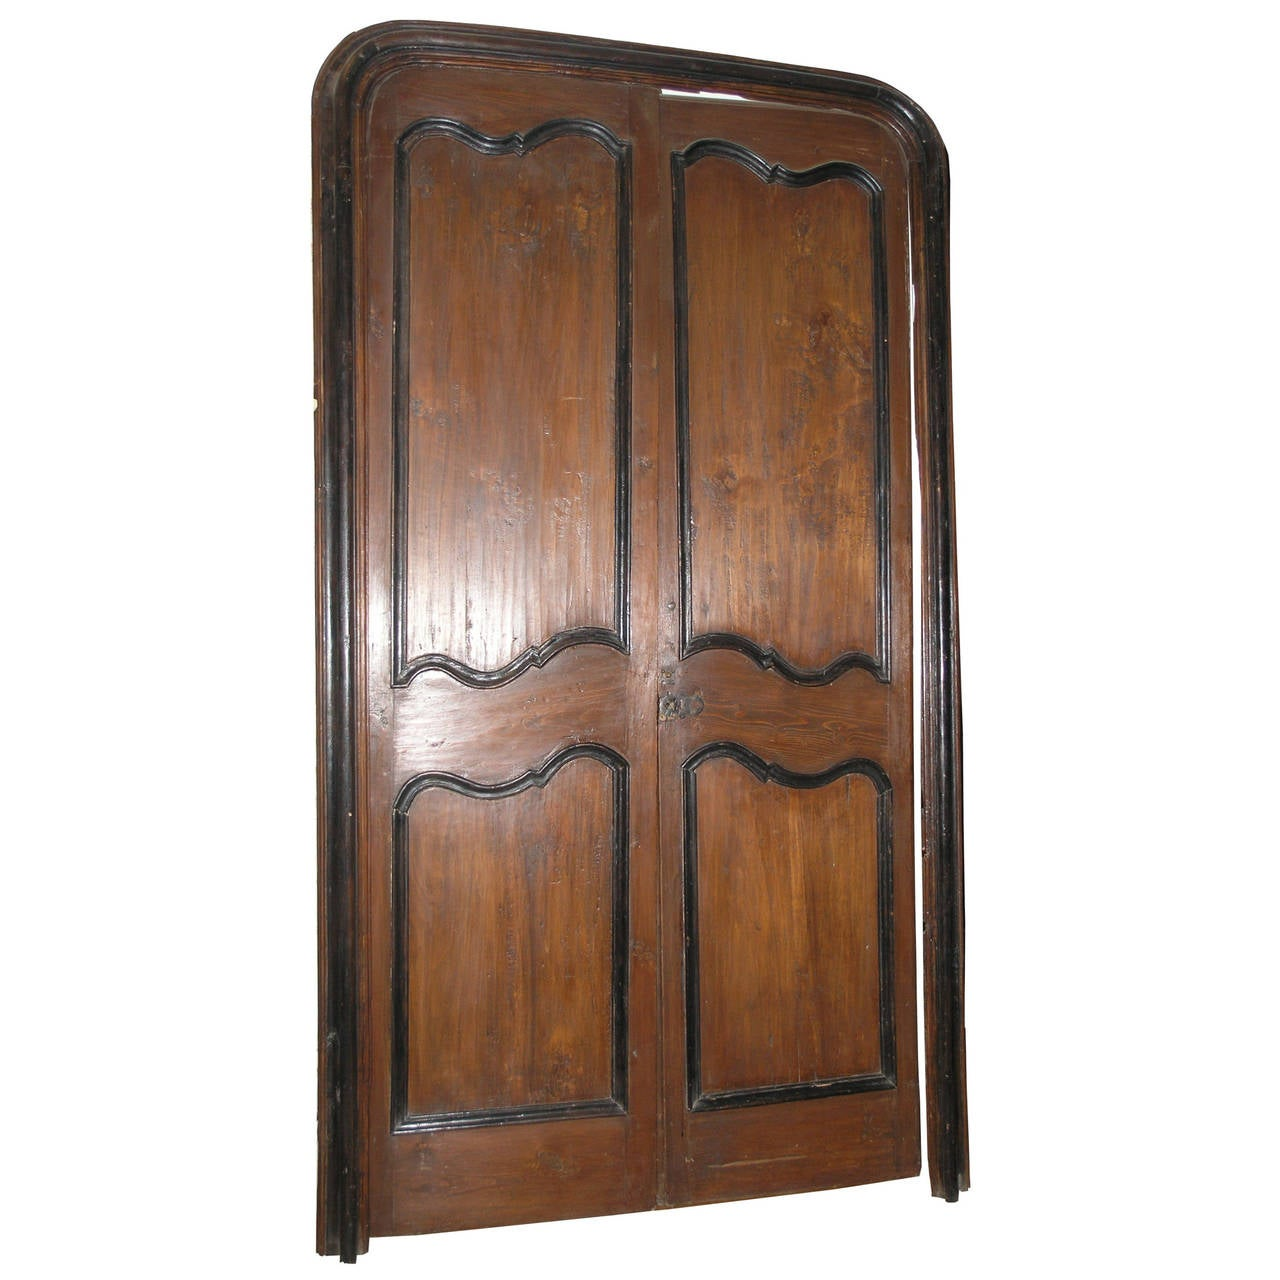 Antique poplar double door for sale at 1stdibs for Double doors for sale